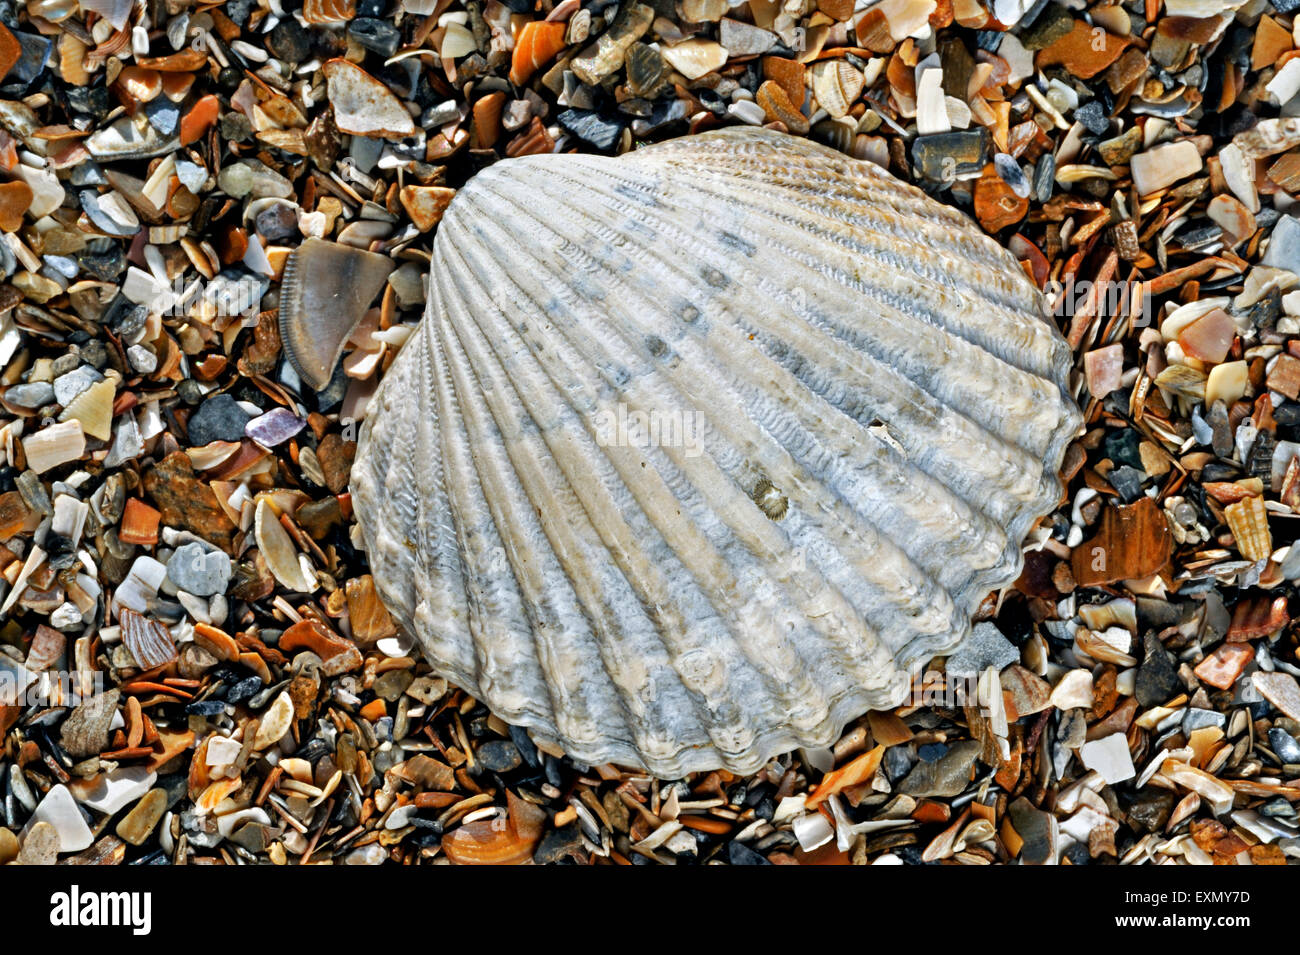 Poorly ribbed cockle (Acanthocardia paucicostata) shell washed on beach - Stock Image